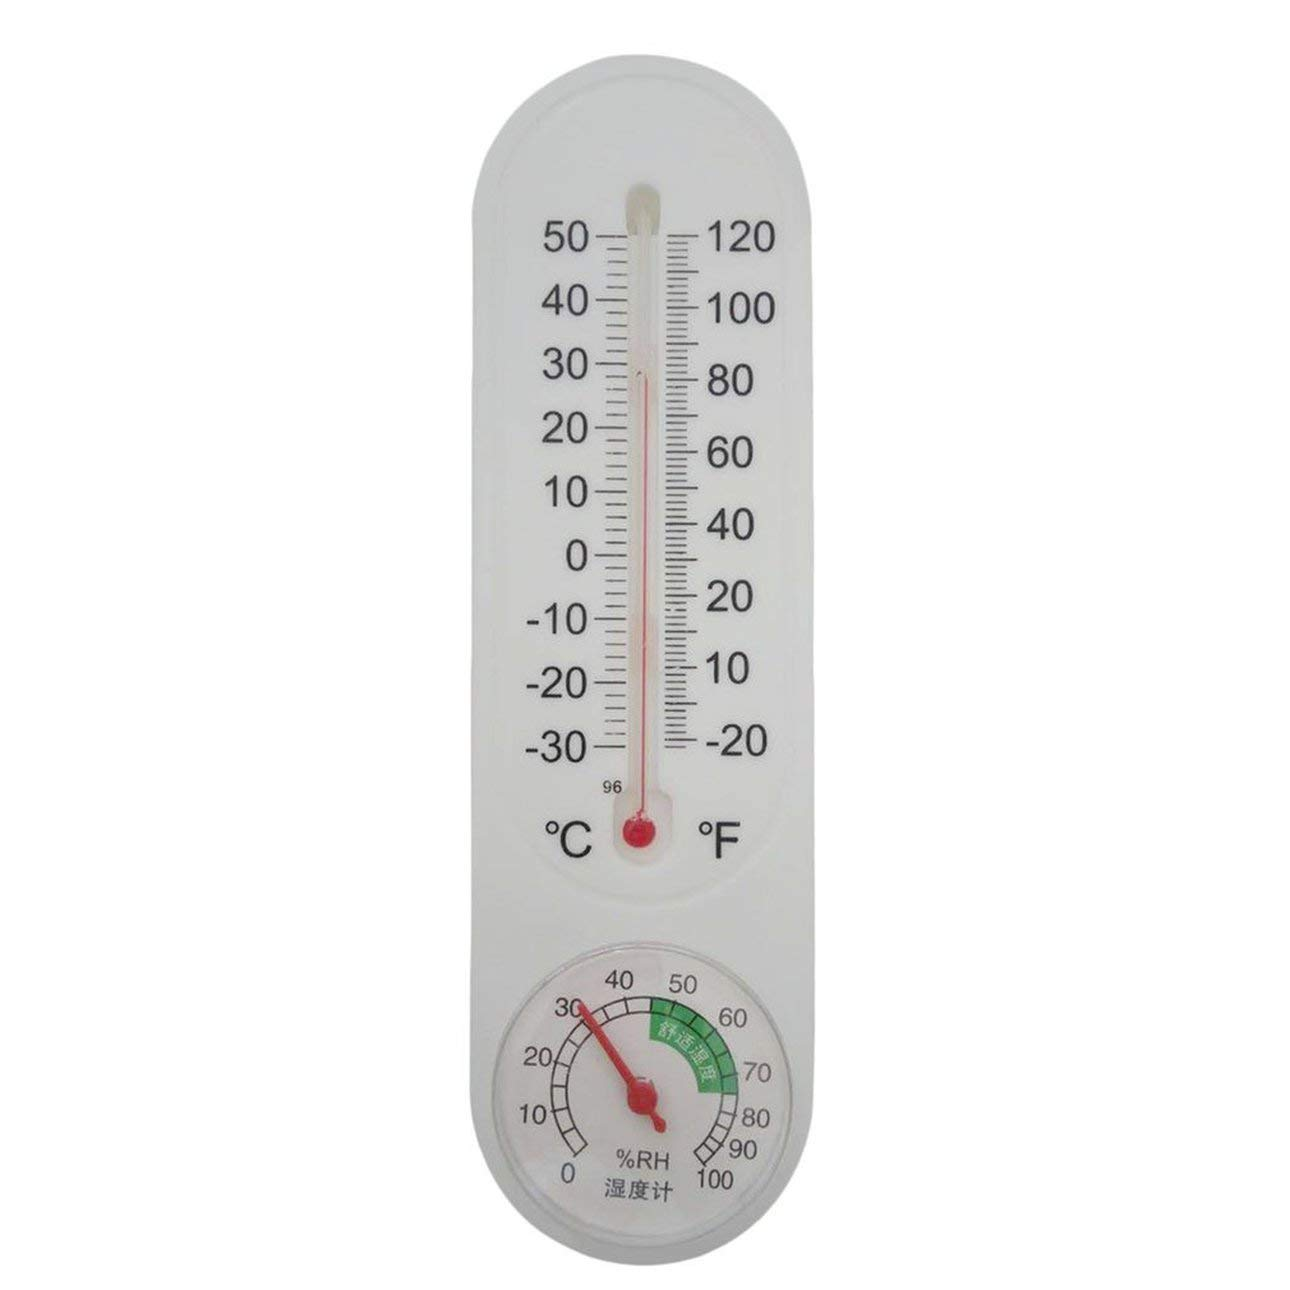 Liobaba Thermometer Humidity Analog Household Thermometer Hygrometer Wall-Mounted Tester Measure Home Popular